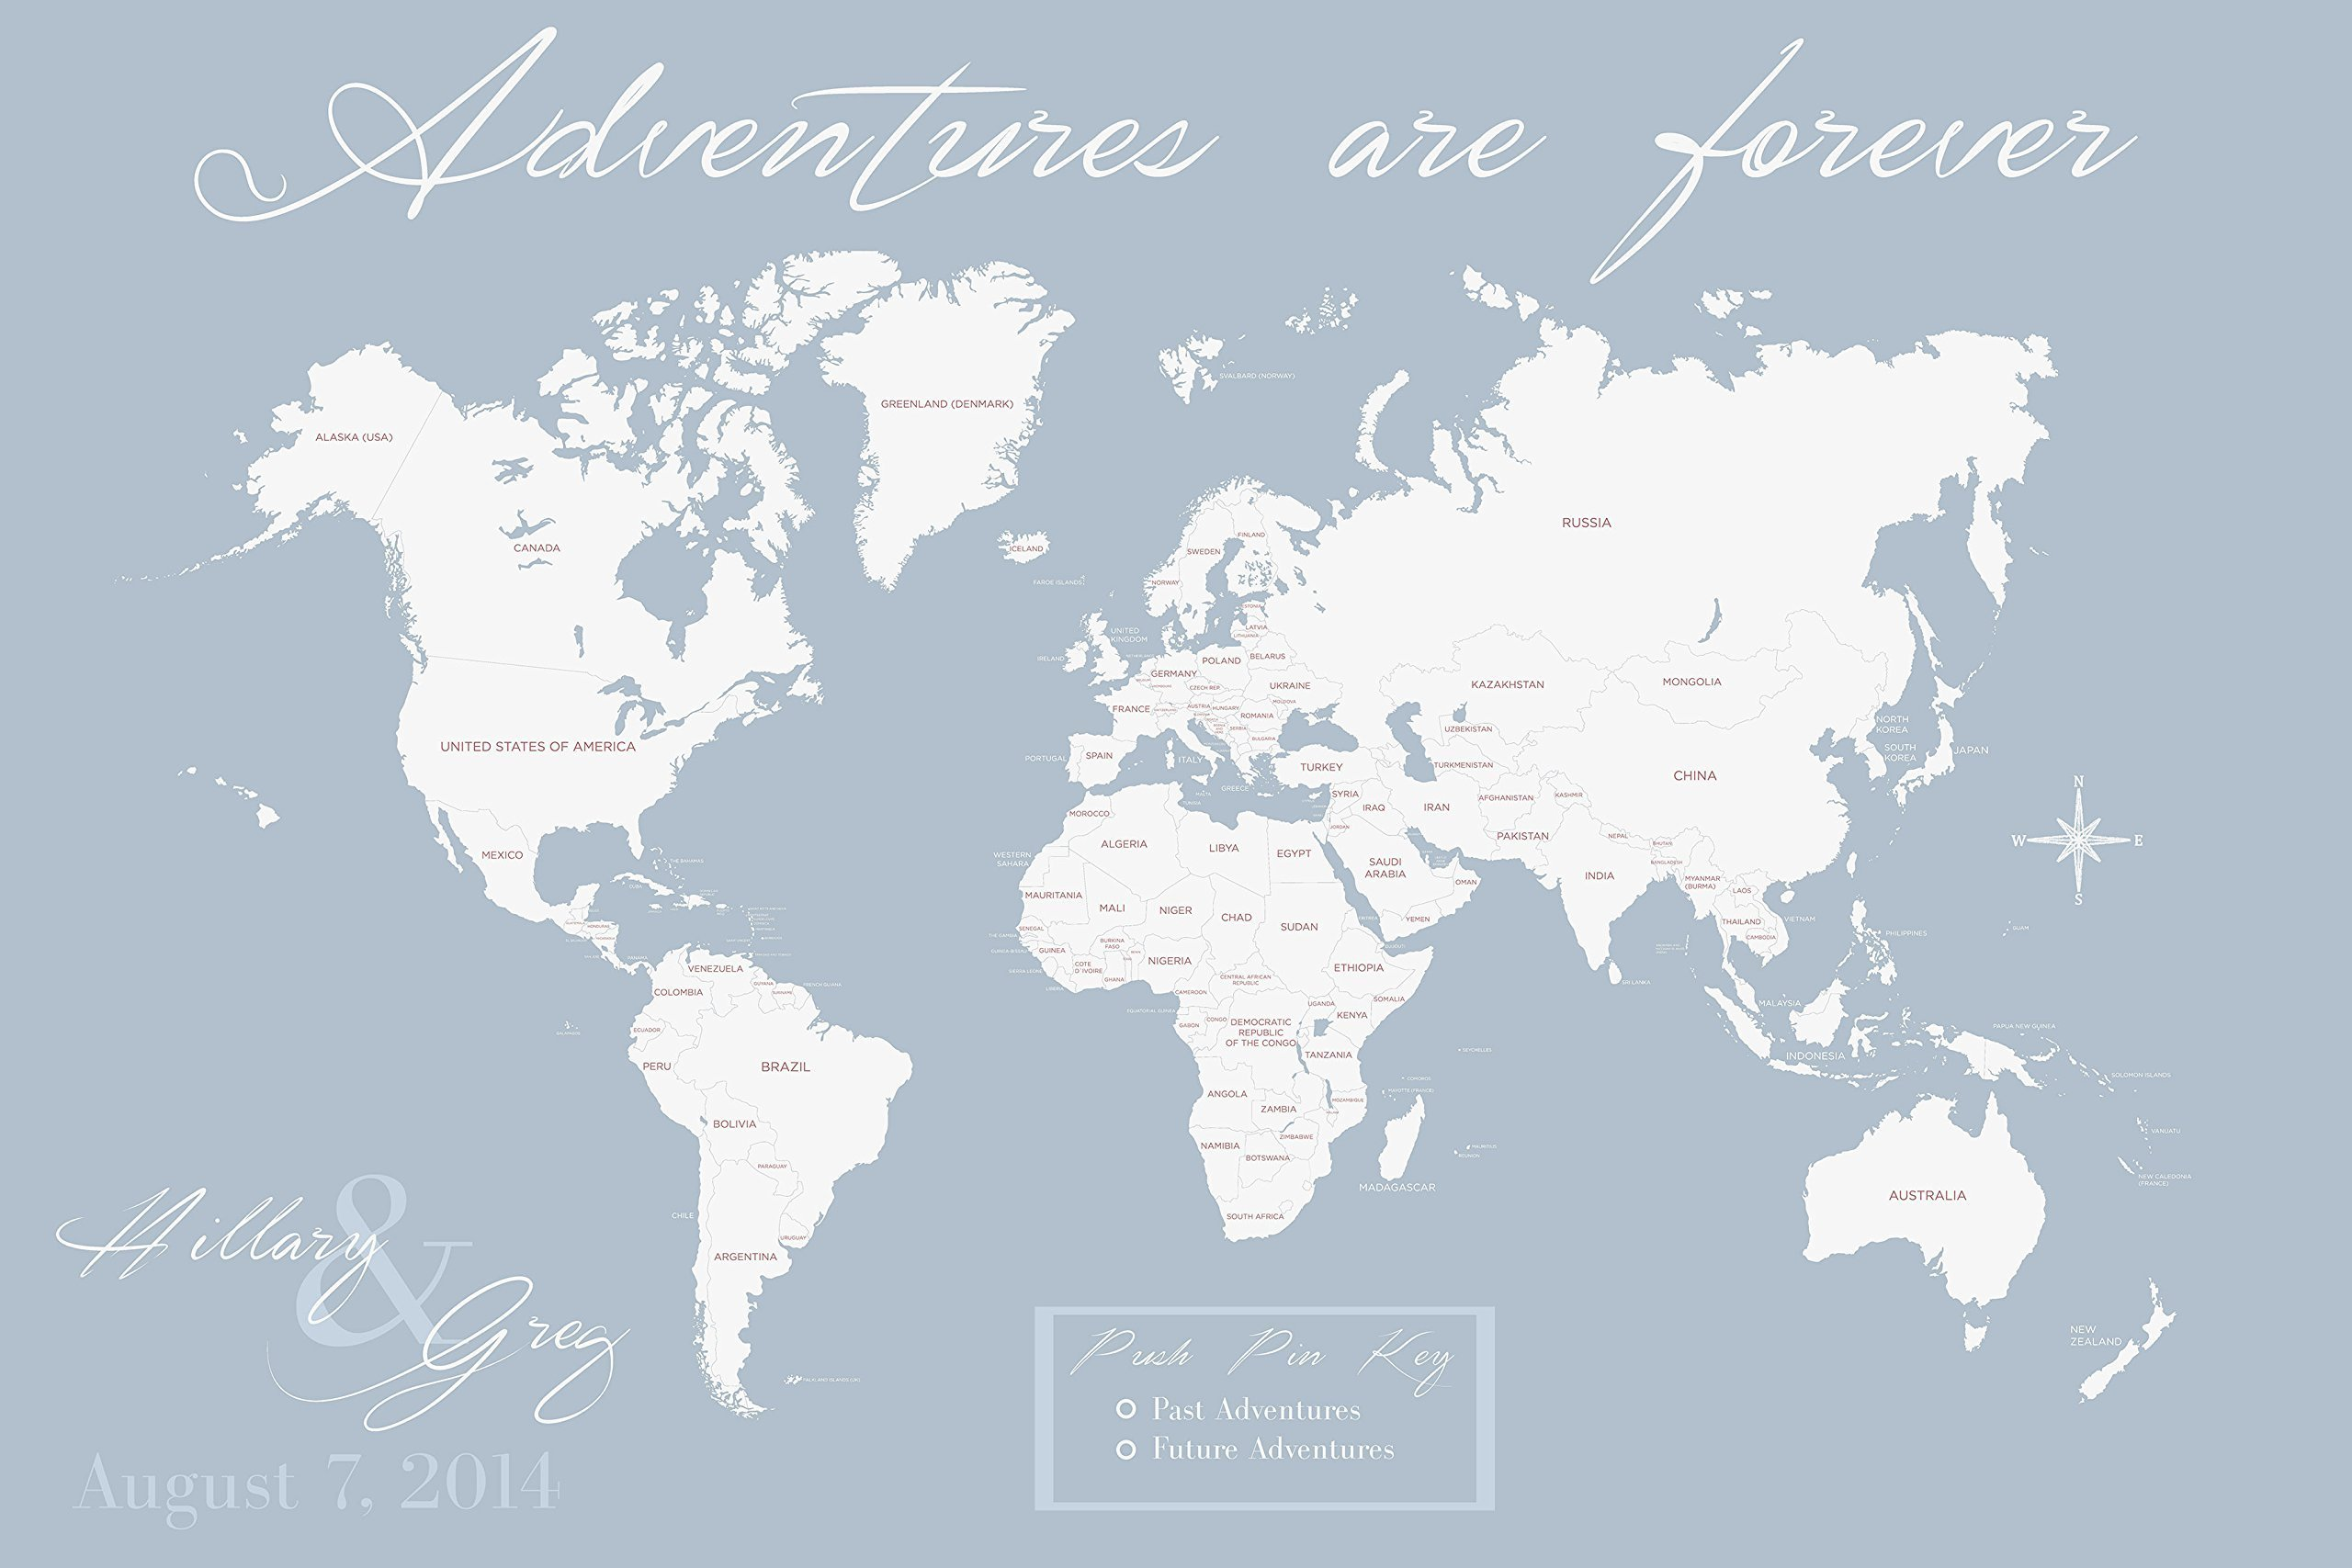 Personalized World Map Push Pin Map On Canvas World Travel Map Personalized Wedding Gift by Artist Amber McDowell by amberpaints4you